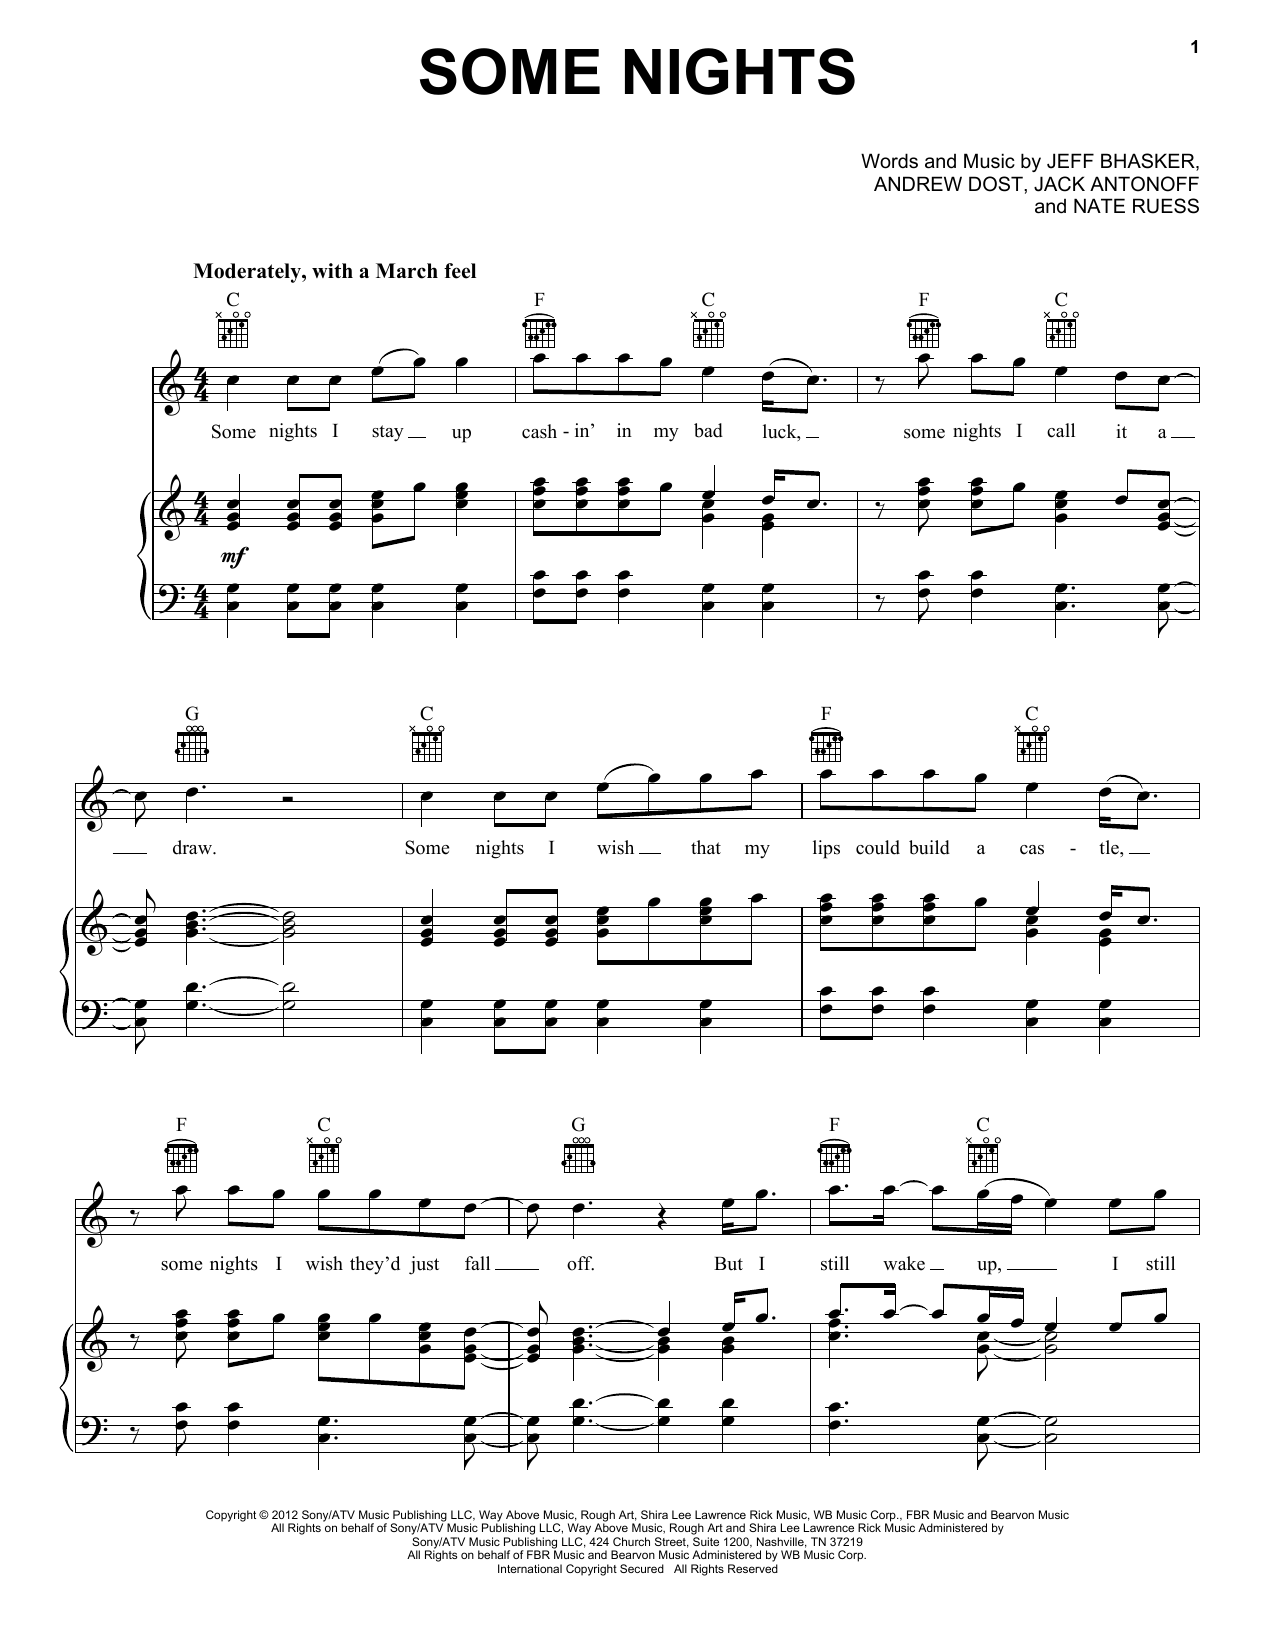 fun. Some Nights sheet music notes and chords